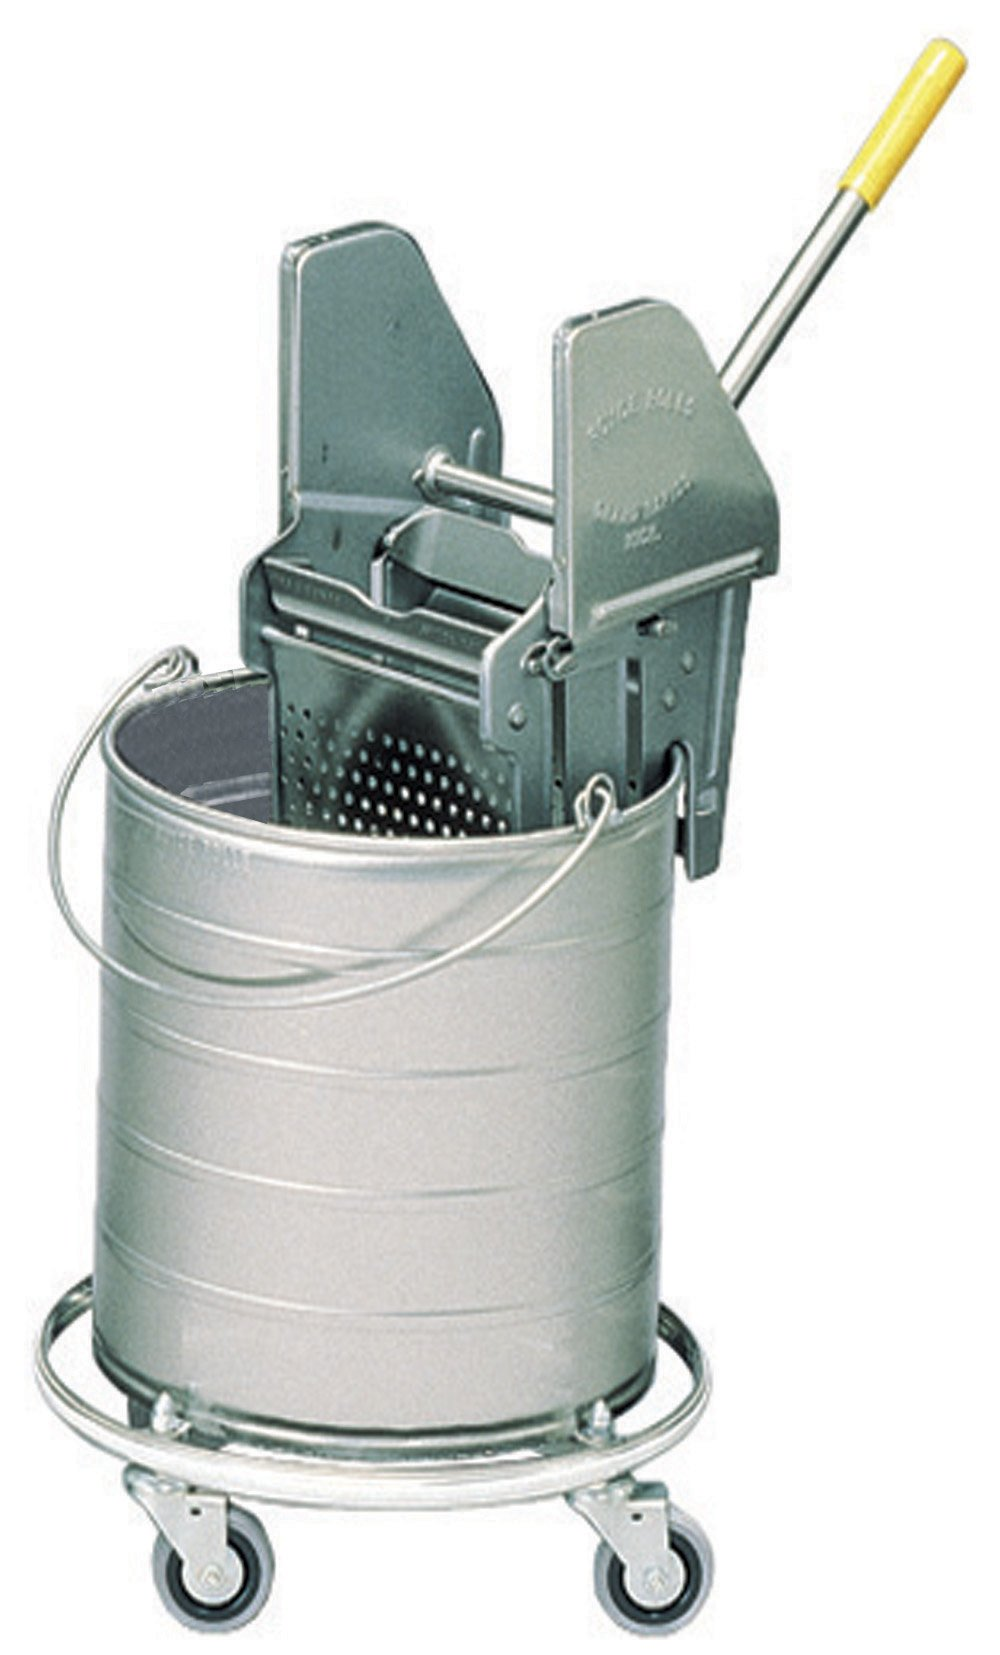 Royce Rolls Stainless Steel 10-Gallon Round Mop Bucket and 24-32 oz. Mop Wringer Combo on 3'' Casters - #4310